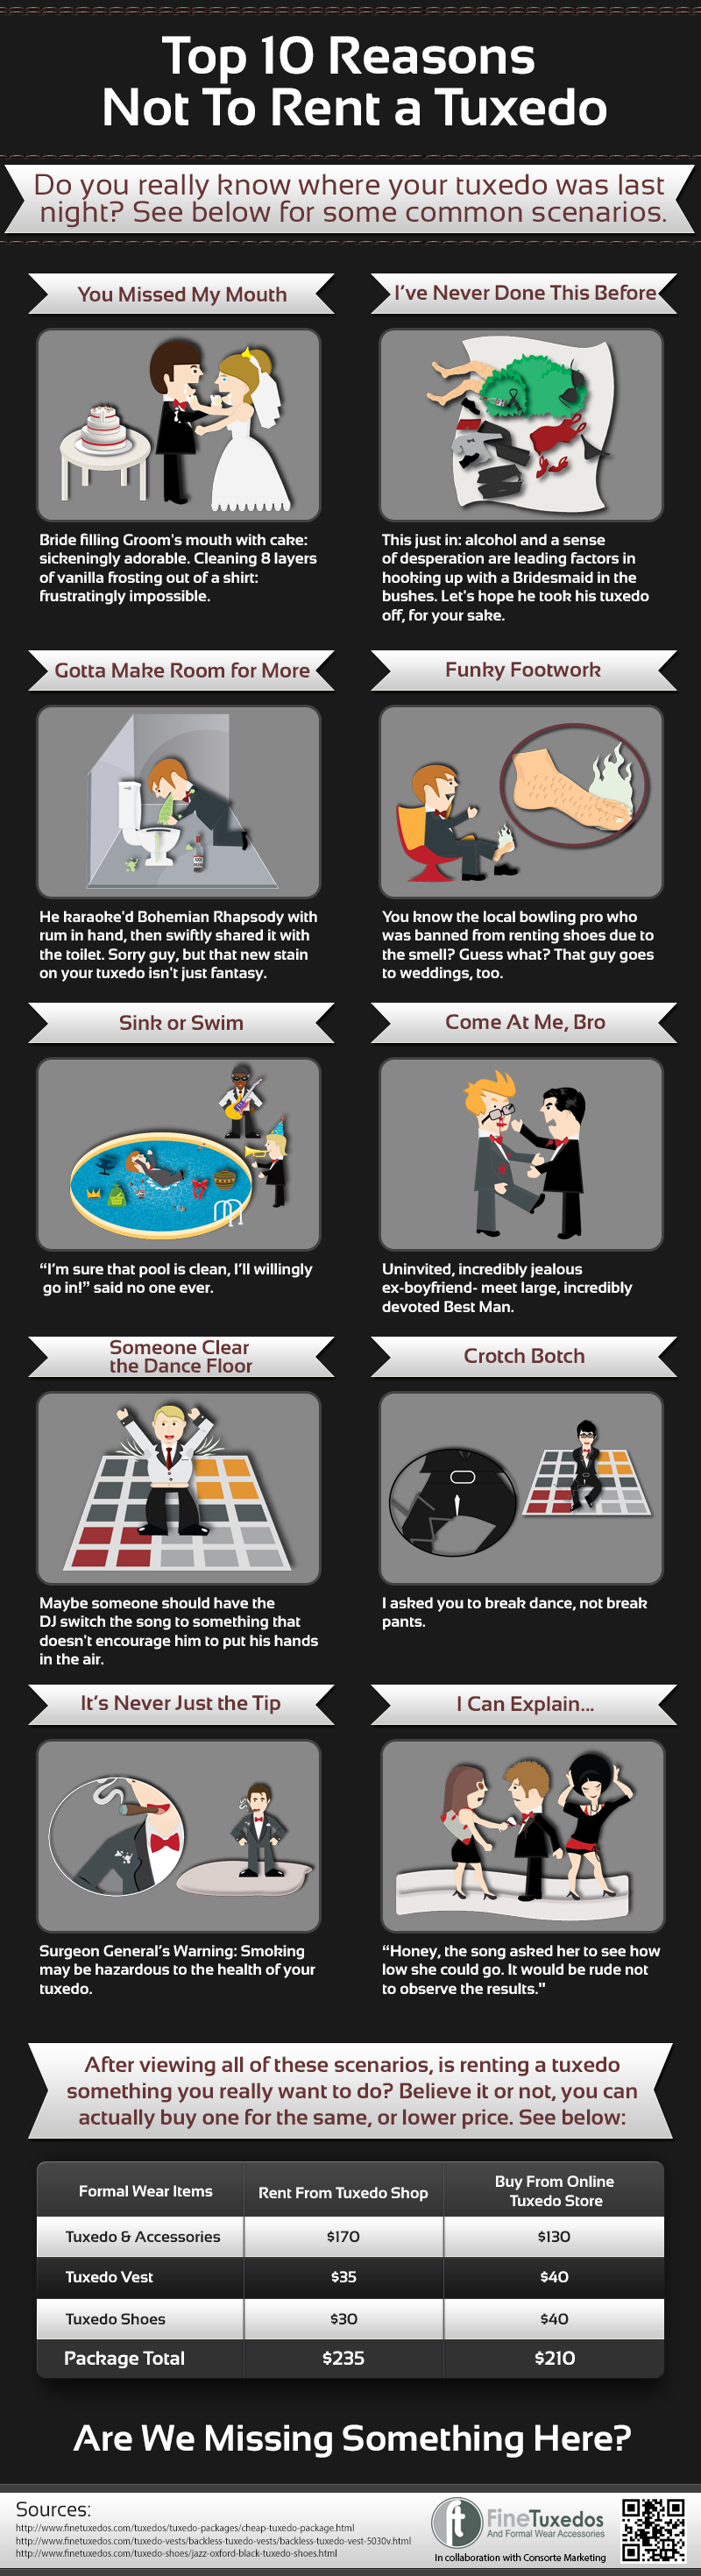 10 Things to Consider Before Renting a Tuxedo